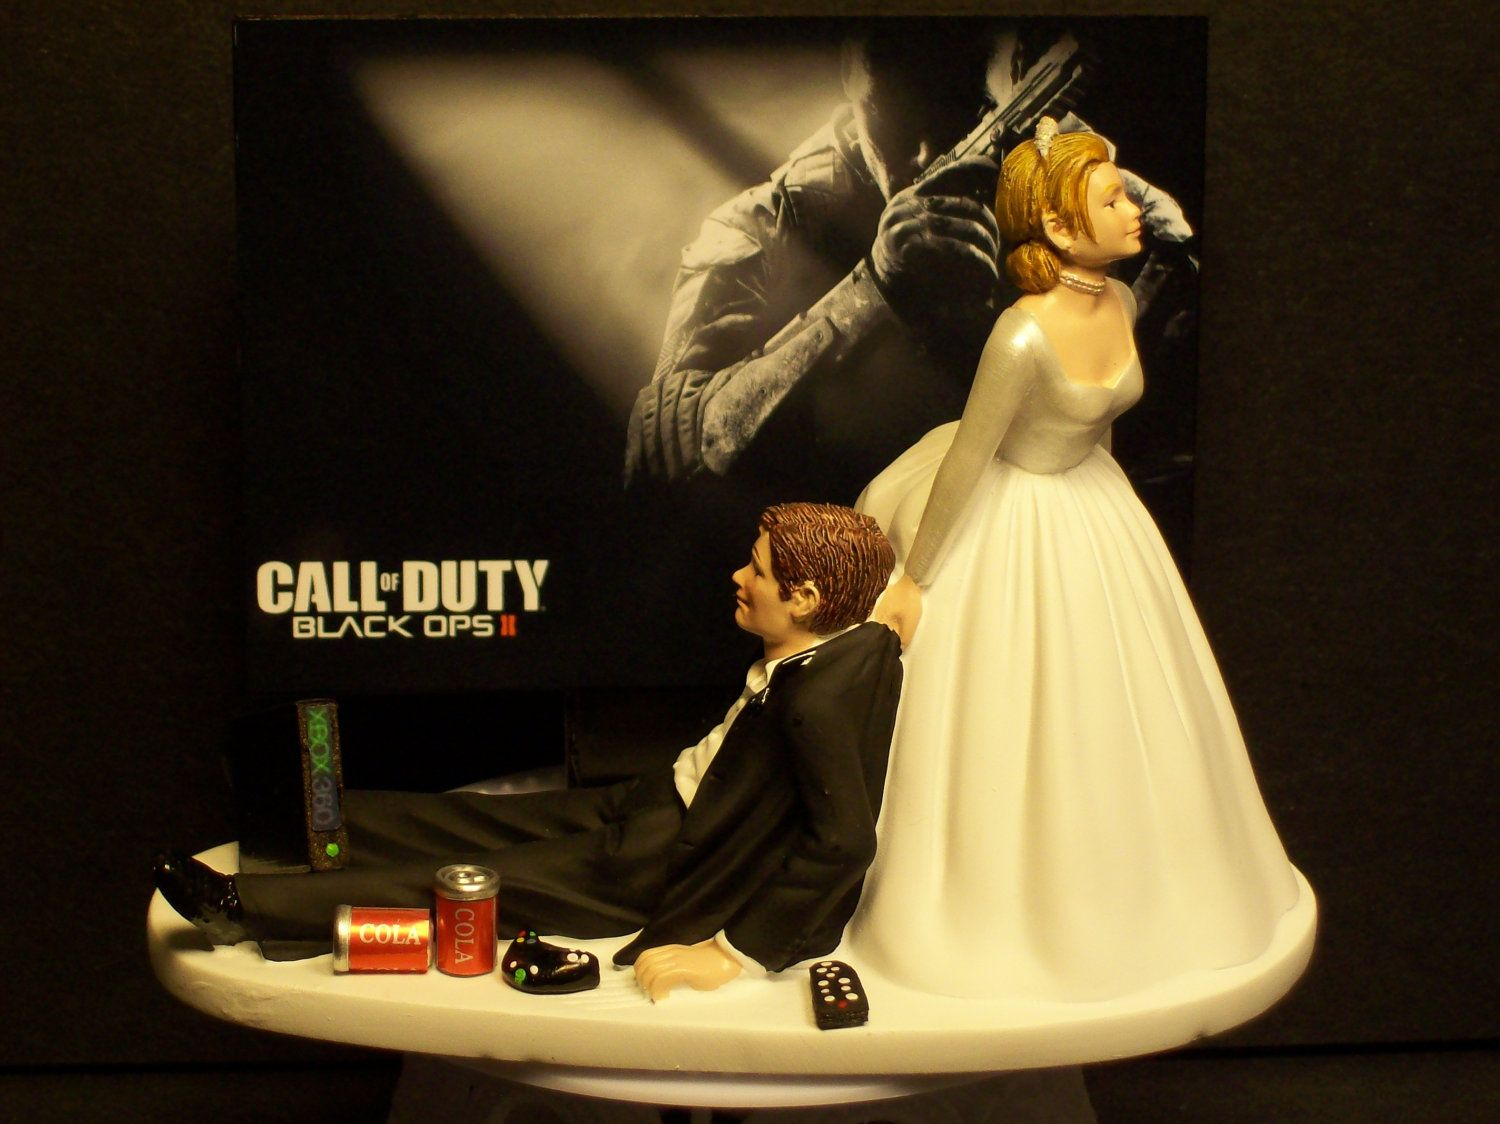 Video Call Of Duty Black Ops 2 Bride And Groom Funny Wedding Cake Topper